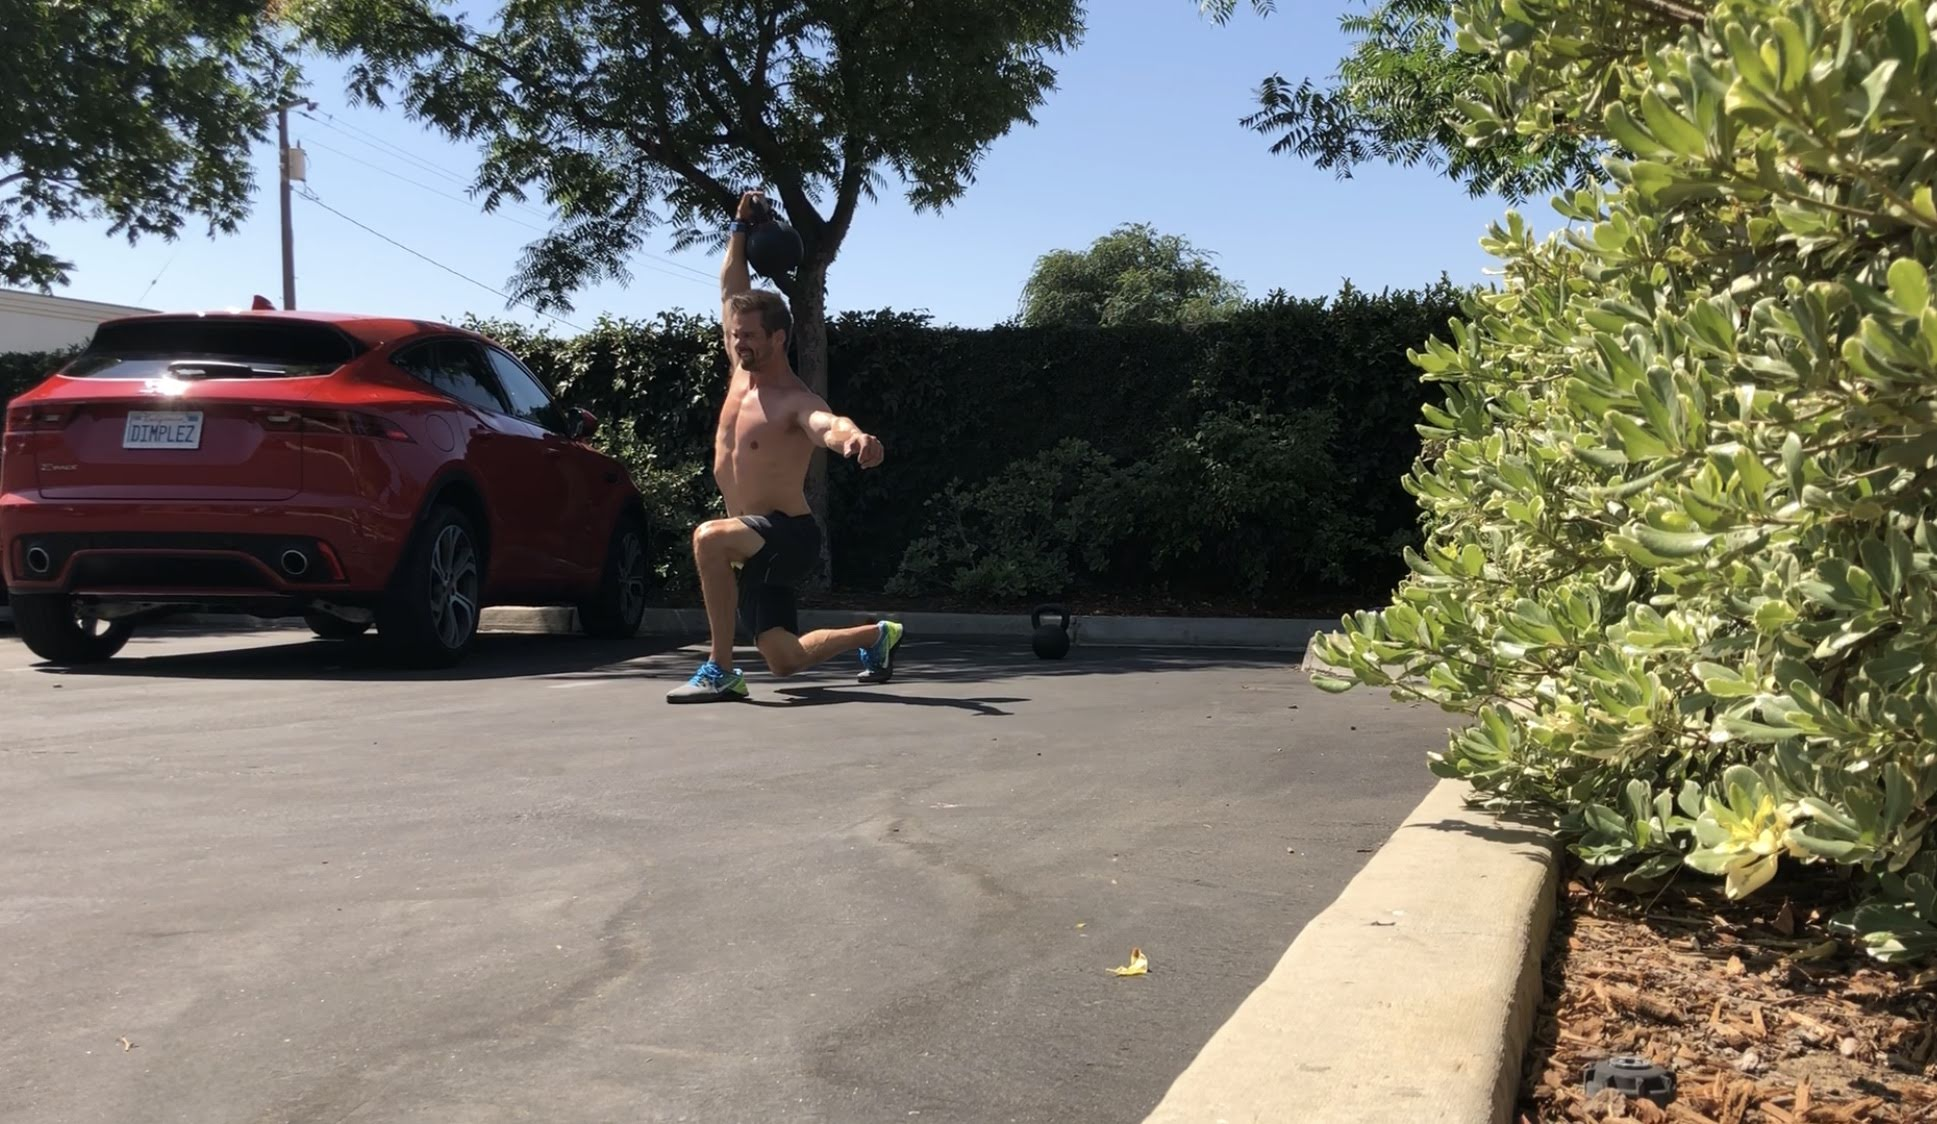 Joe Bauer does Parking lot overhead lunges